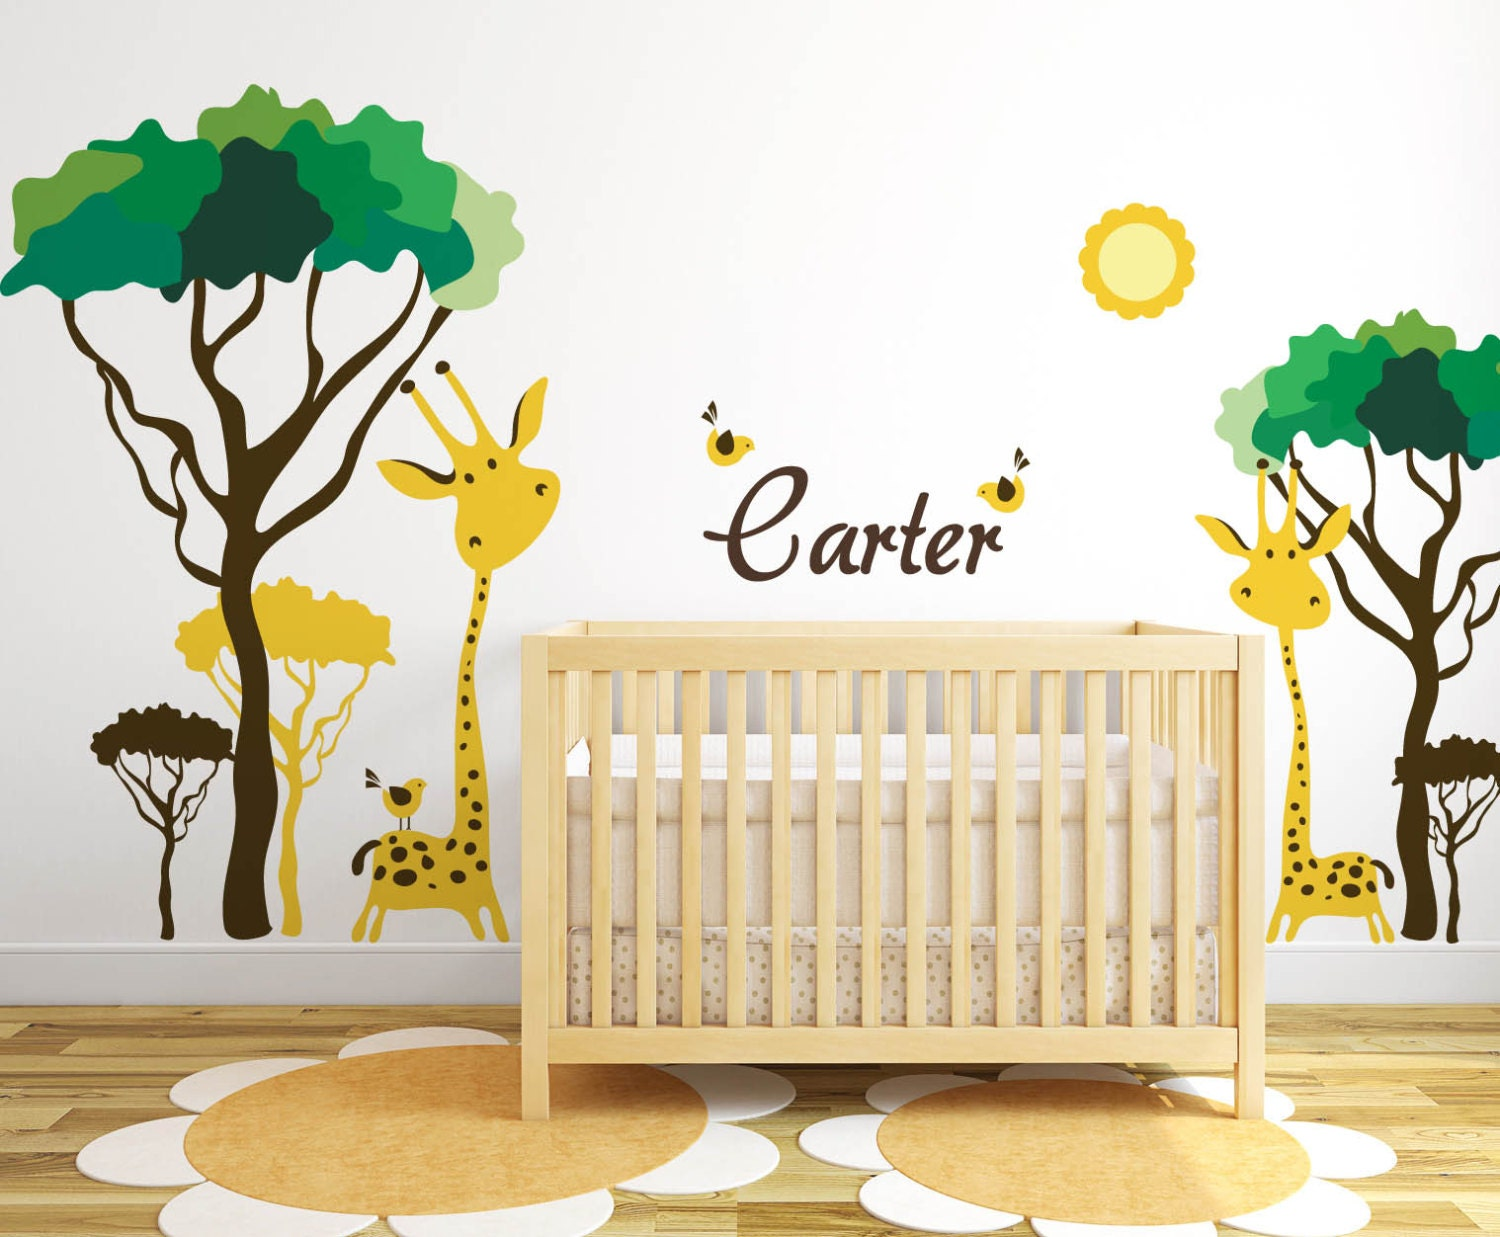 Baby Nursery Ideas Safari Giraffe and Birds Decals for Walls